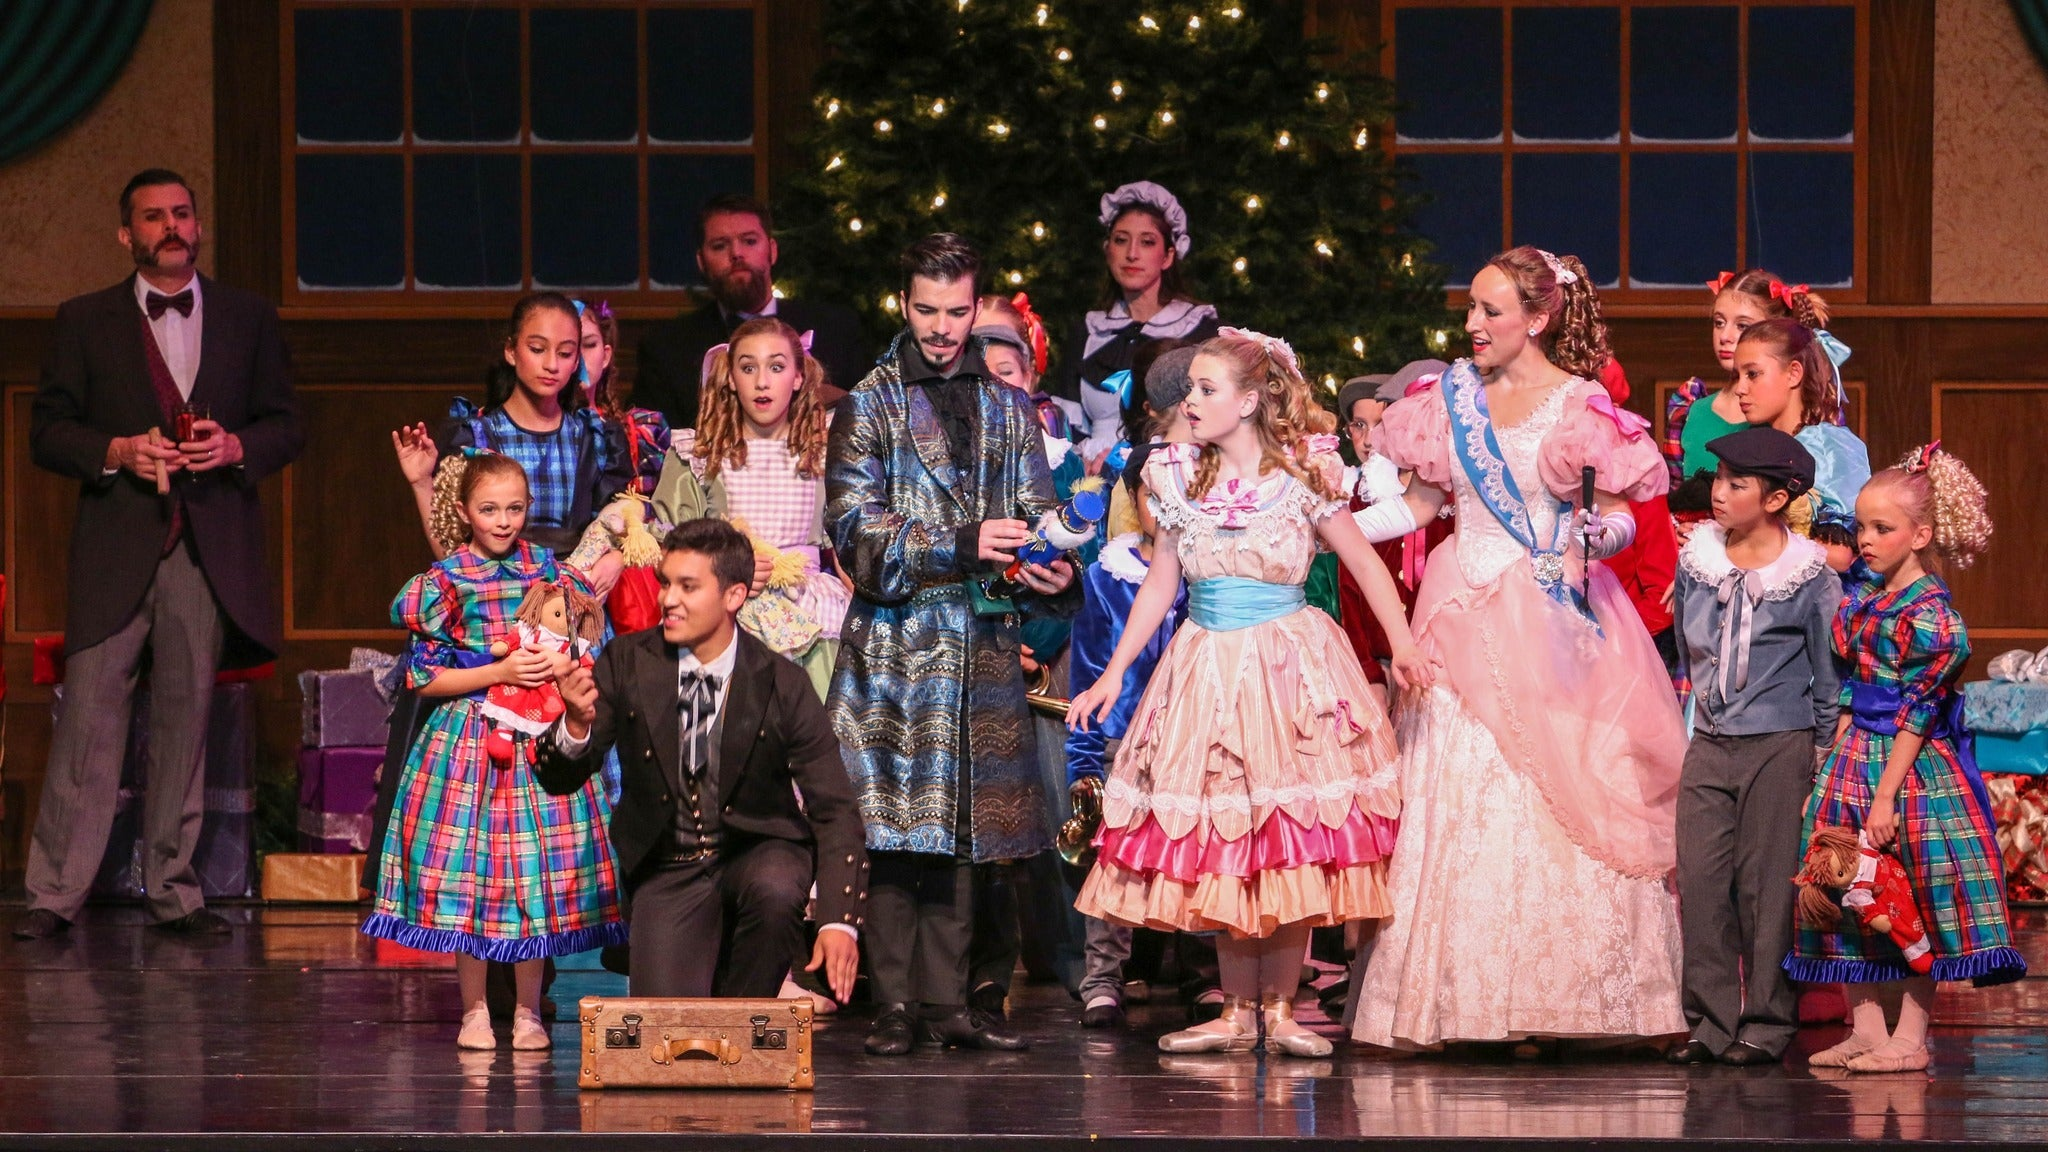 Los Gatos Ballet's Nutcracker at Flint Center